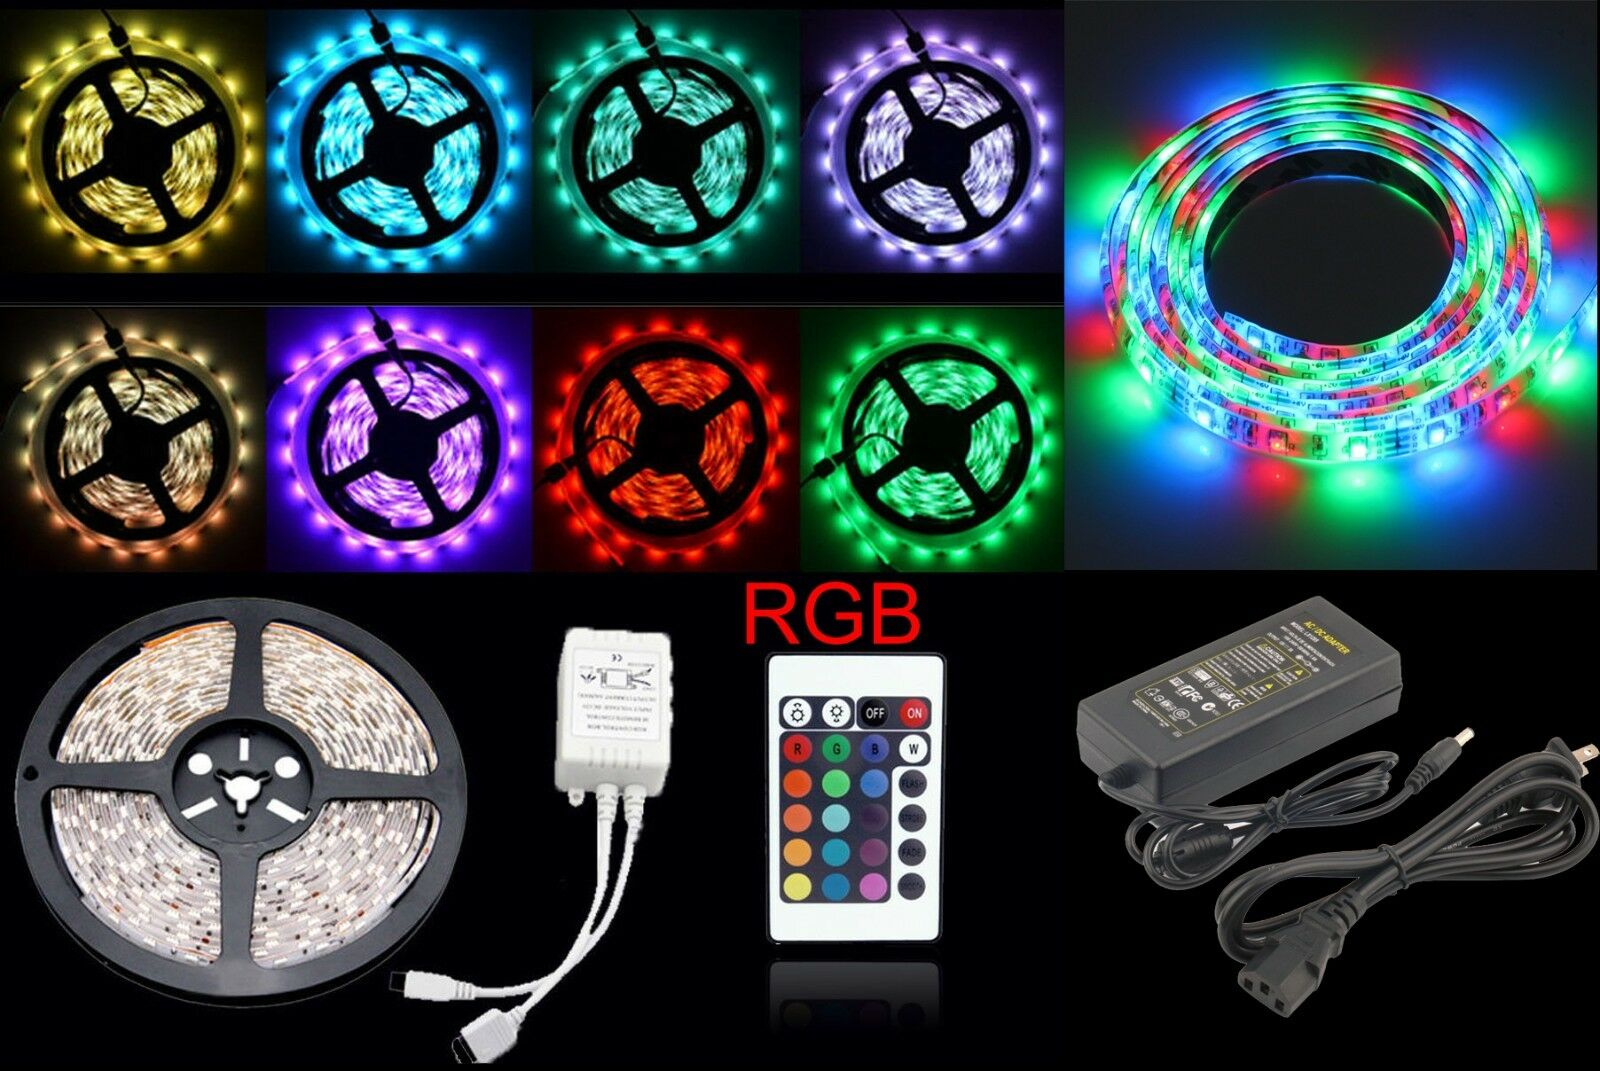 Vyser 5050 5m 10m led strip light rgb multi color tv backlight vyser 5050 5m 10m led strip light rgb multi color tv backlight remote kit 1 of 4free shipping see more mozeypictures Images